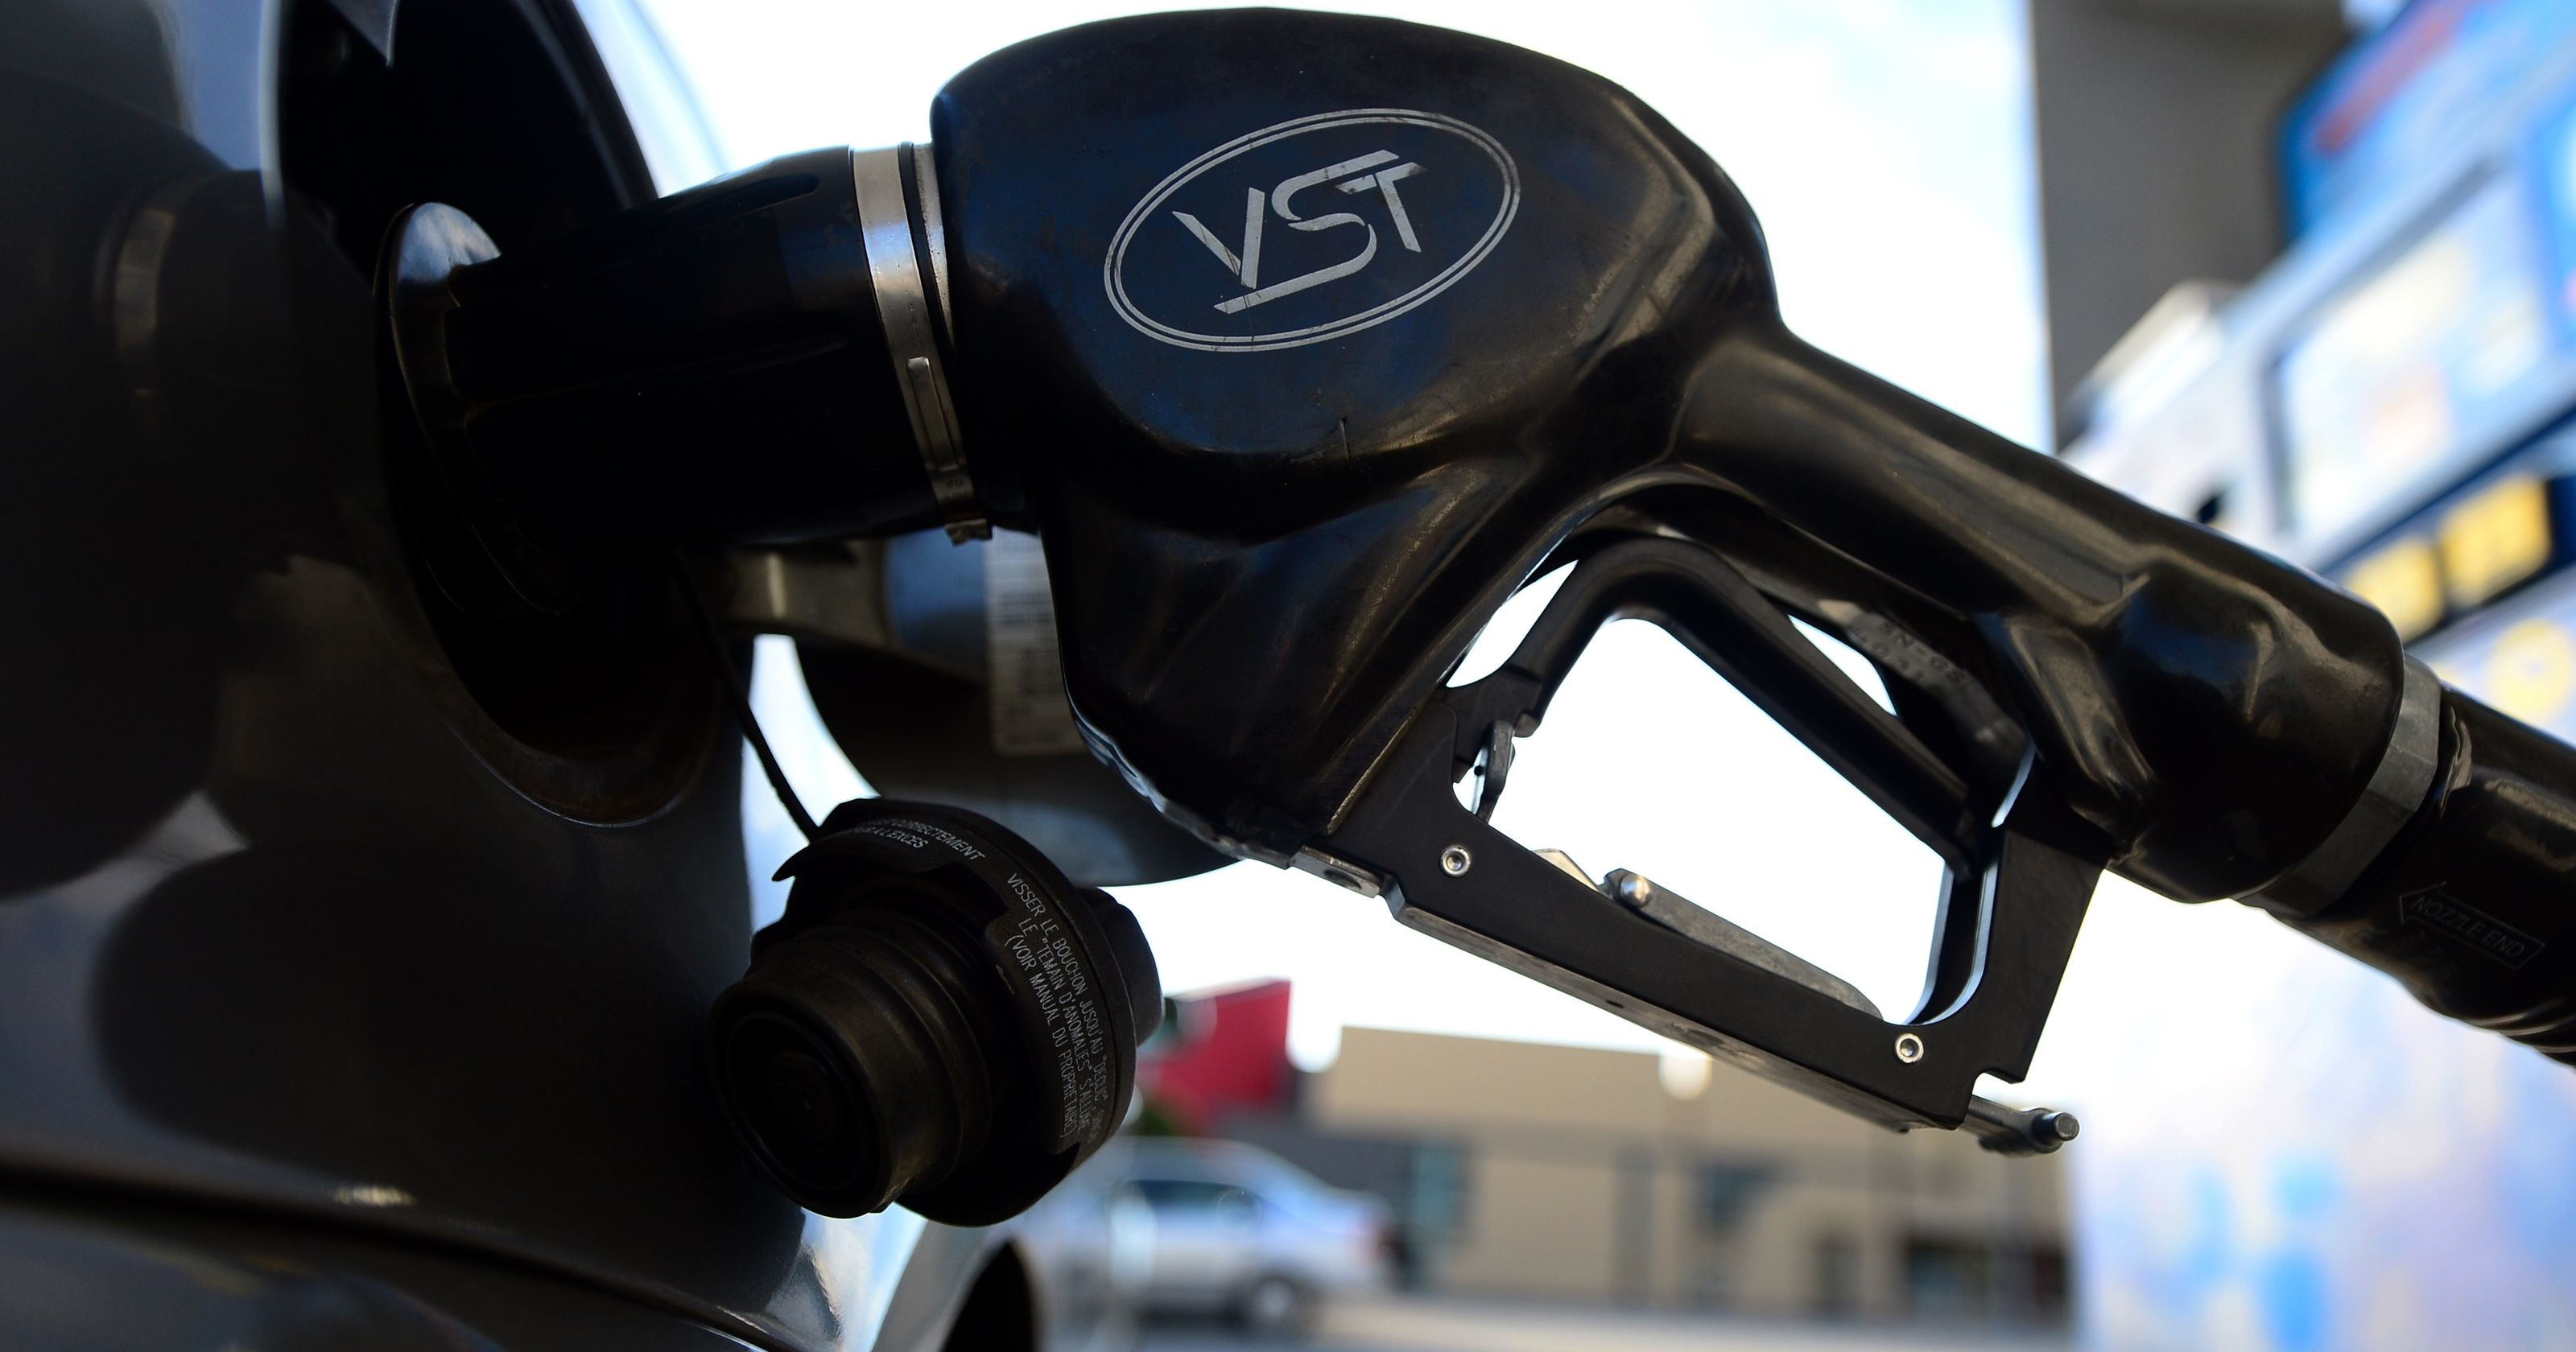 aaa used cars best of aaa warns e15 gasoline could cause car damage